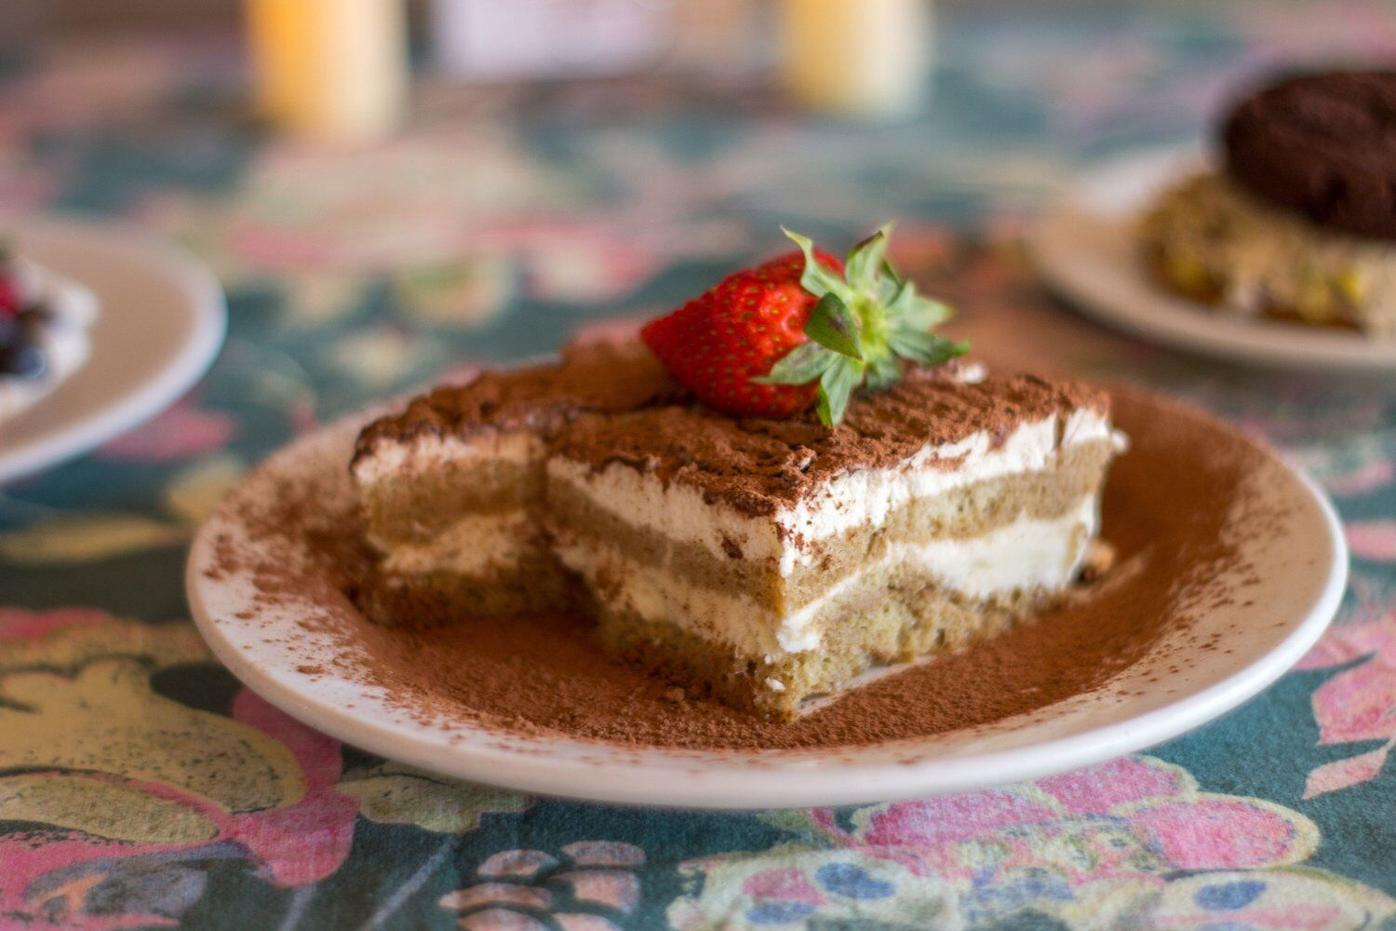 At Dottie's, when beer and wine won't do, turn to cake